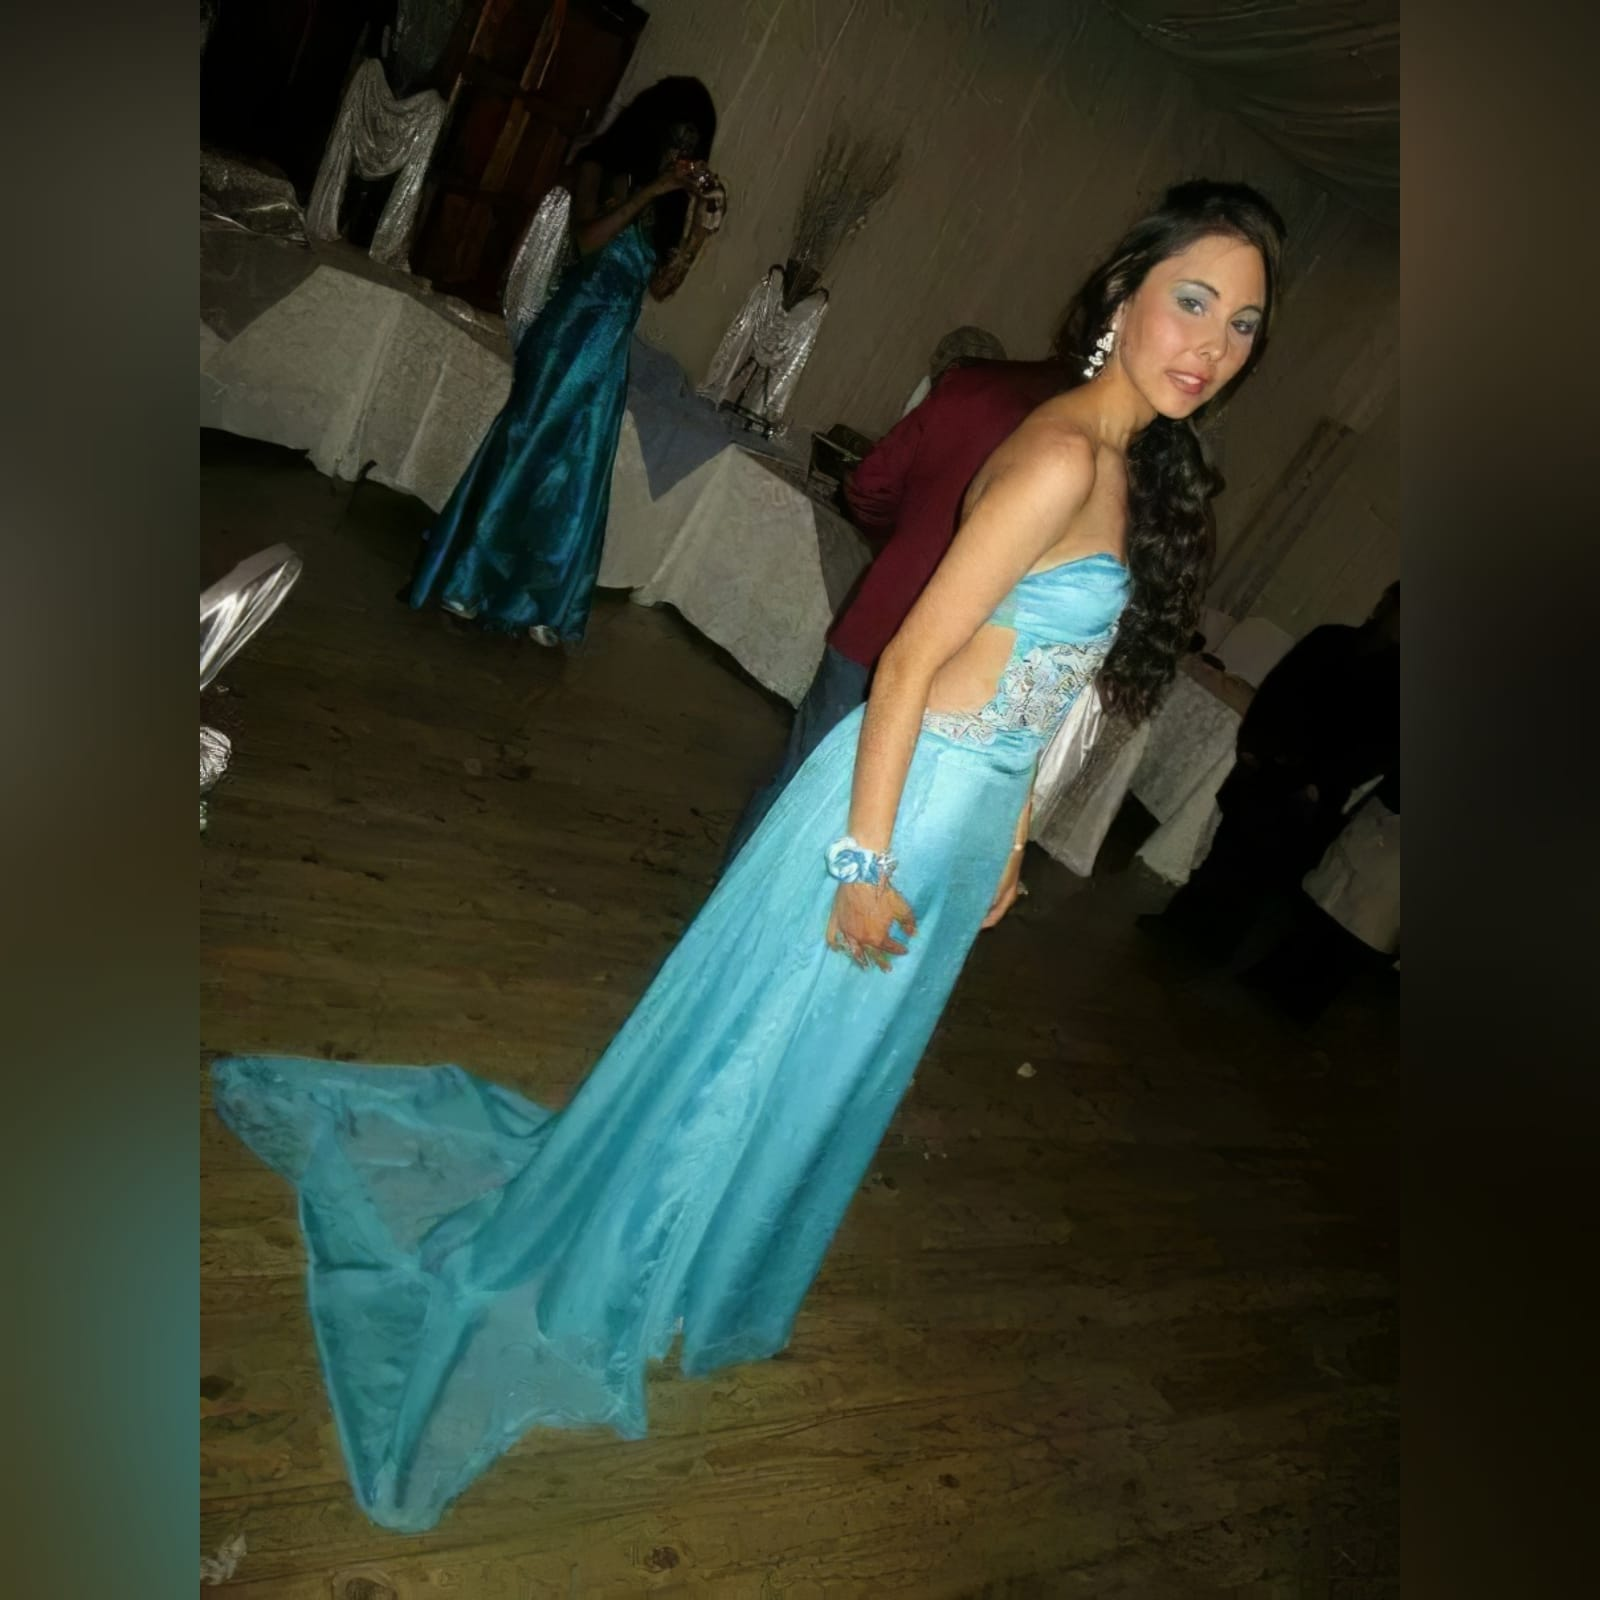 Sky blue chiffon long matric farewell dress 5 sky blue chiffon long matric farewell dress with side tummy opening and low open back. Detailed with silver embellishments. With gathered back chiffon train.